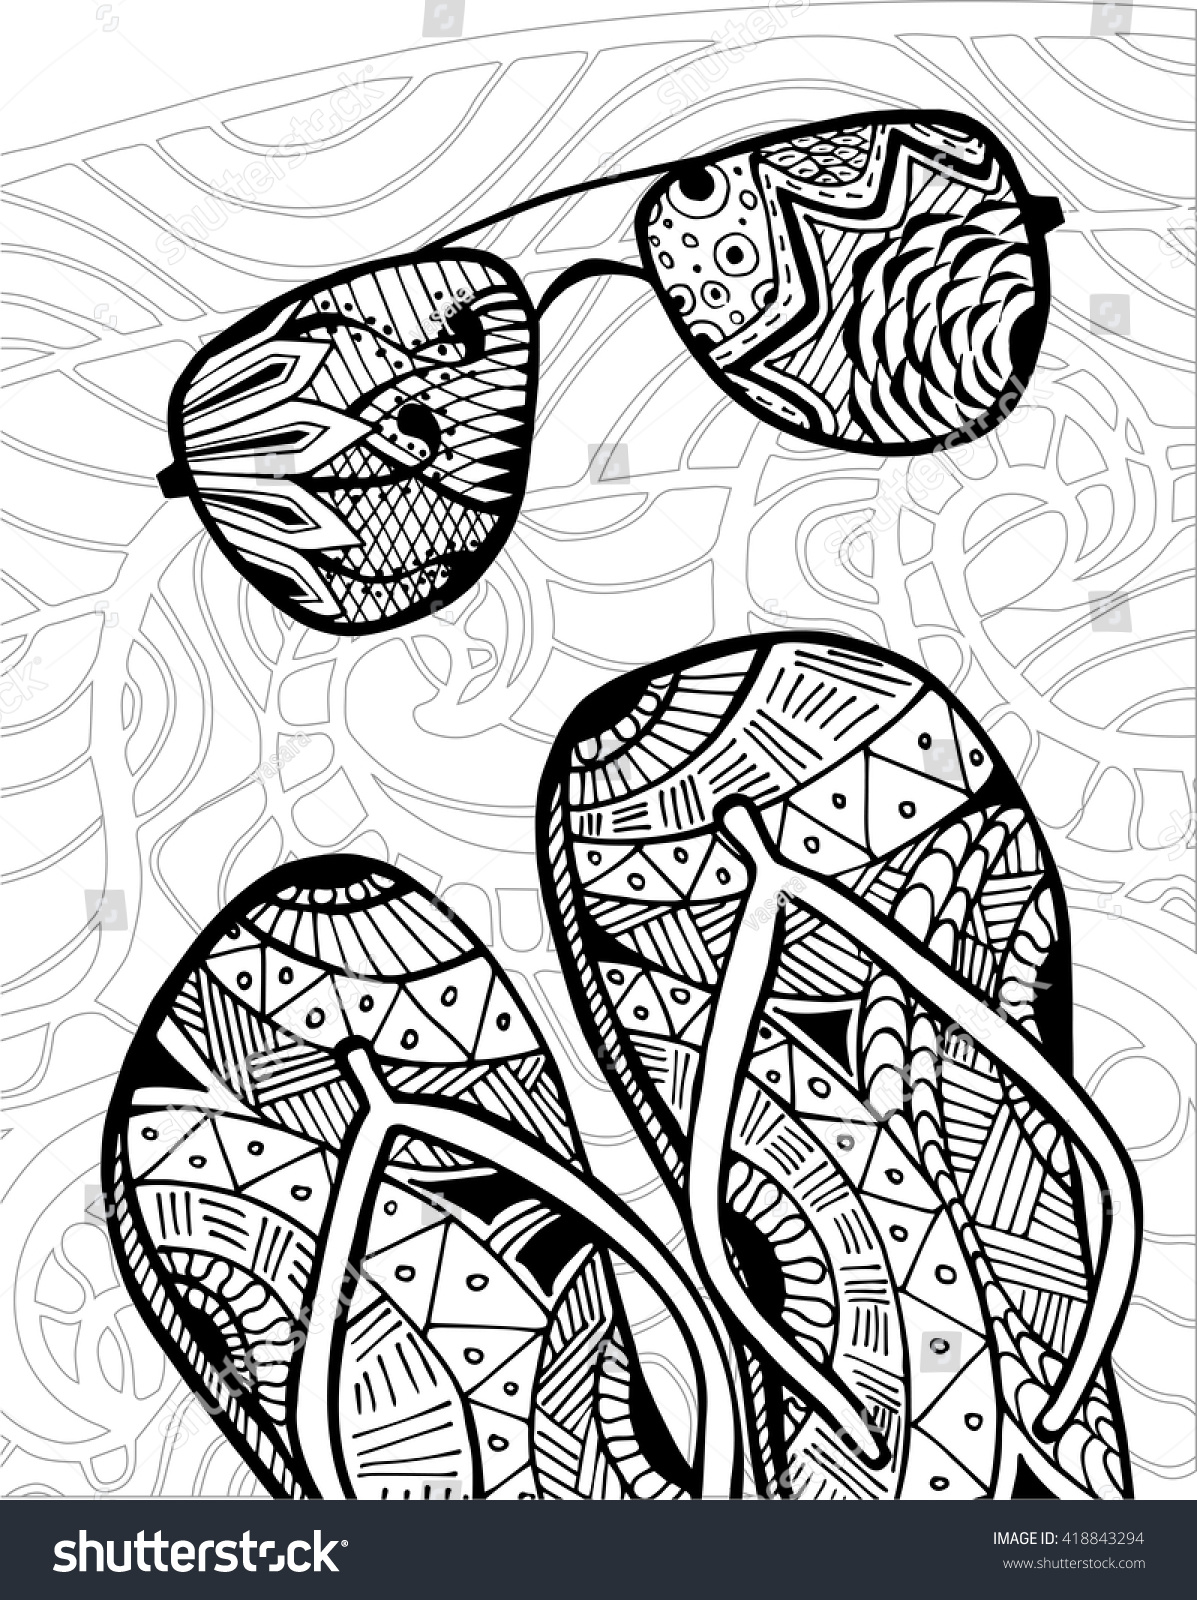 Hand Drawn Zentangle Of Flip Flops At The Beach For Coloring Book